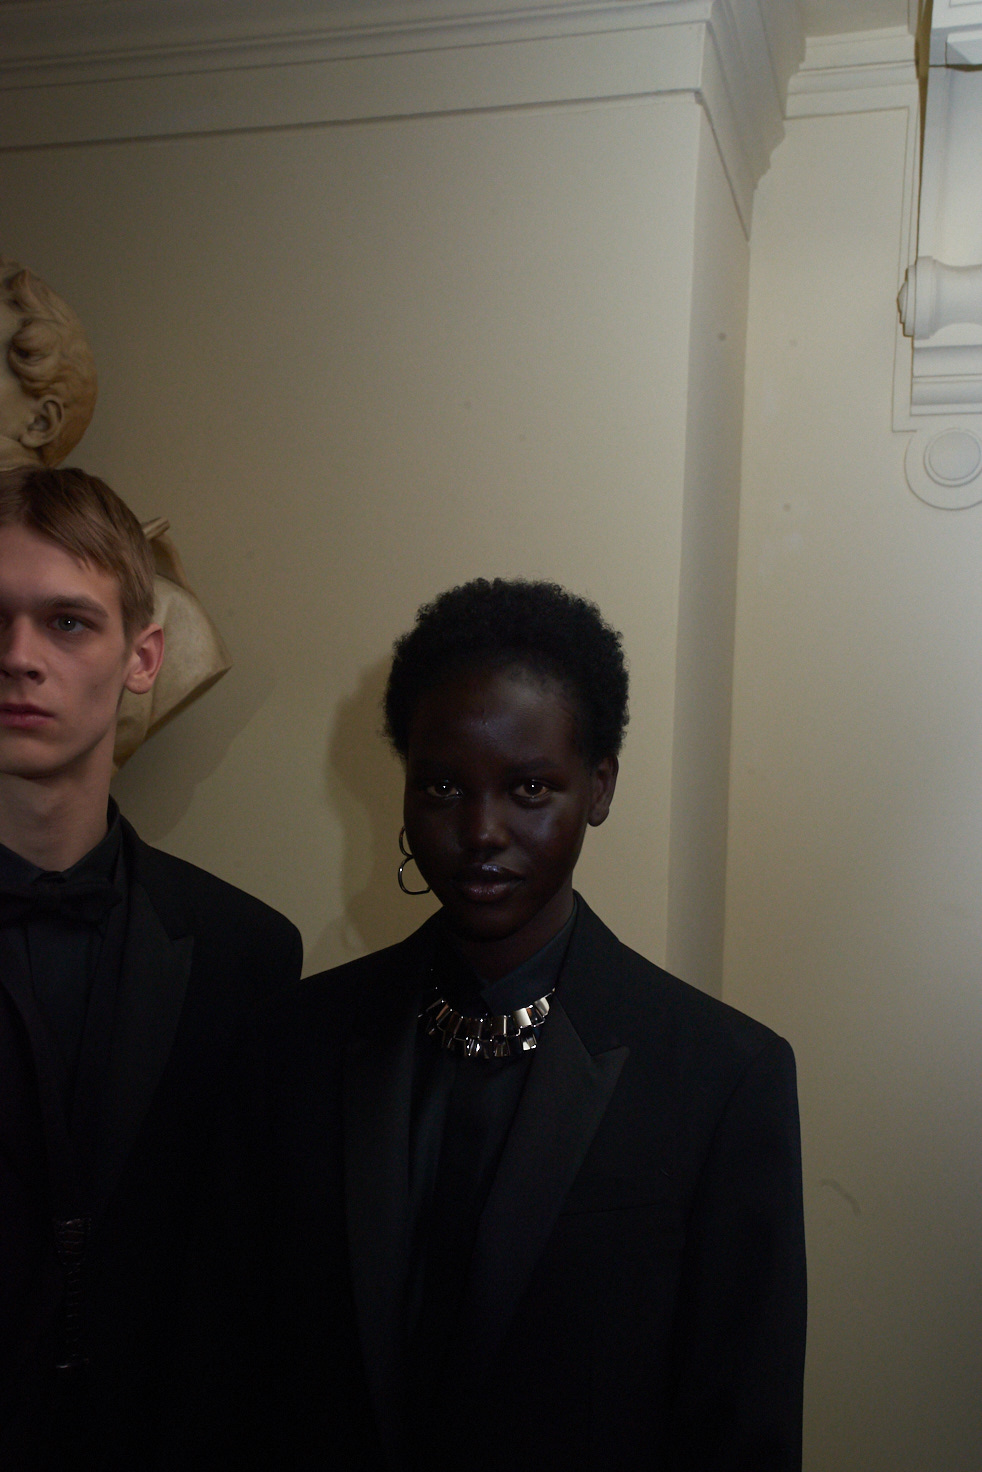 BERLUTI_FW19_Backstage_BTBonline_Behind_The_Blinds_Magazine_Hugo denis-queinec_AES2192.jpg